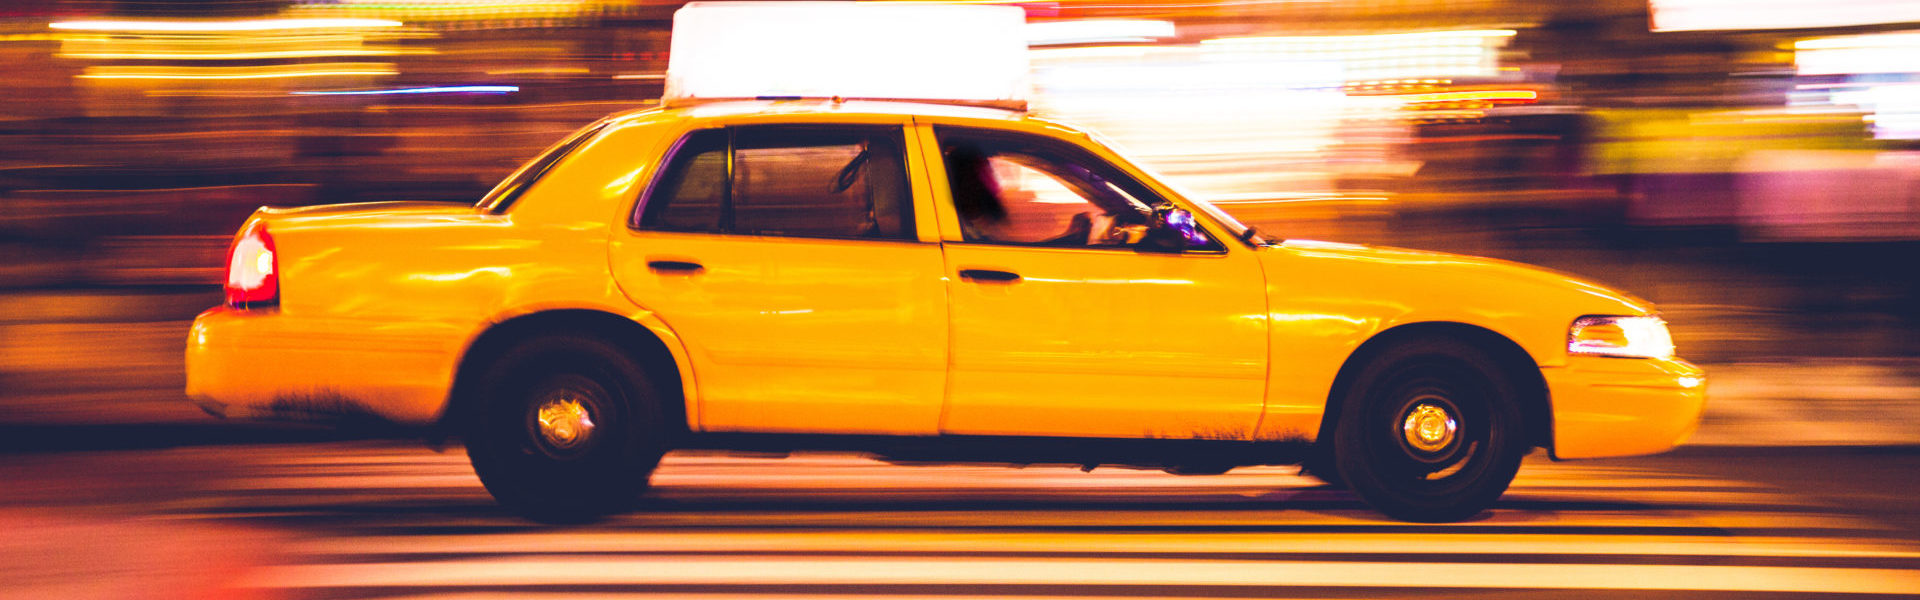 Livery insurance taxi, a yellow cab in New York with motion blur background.